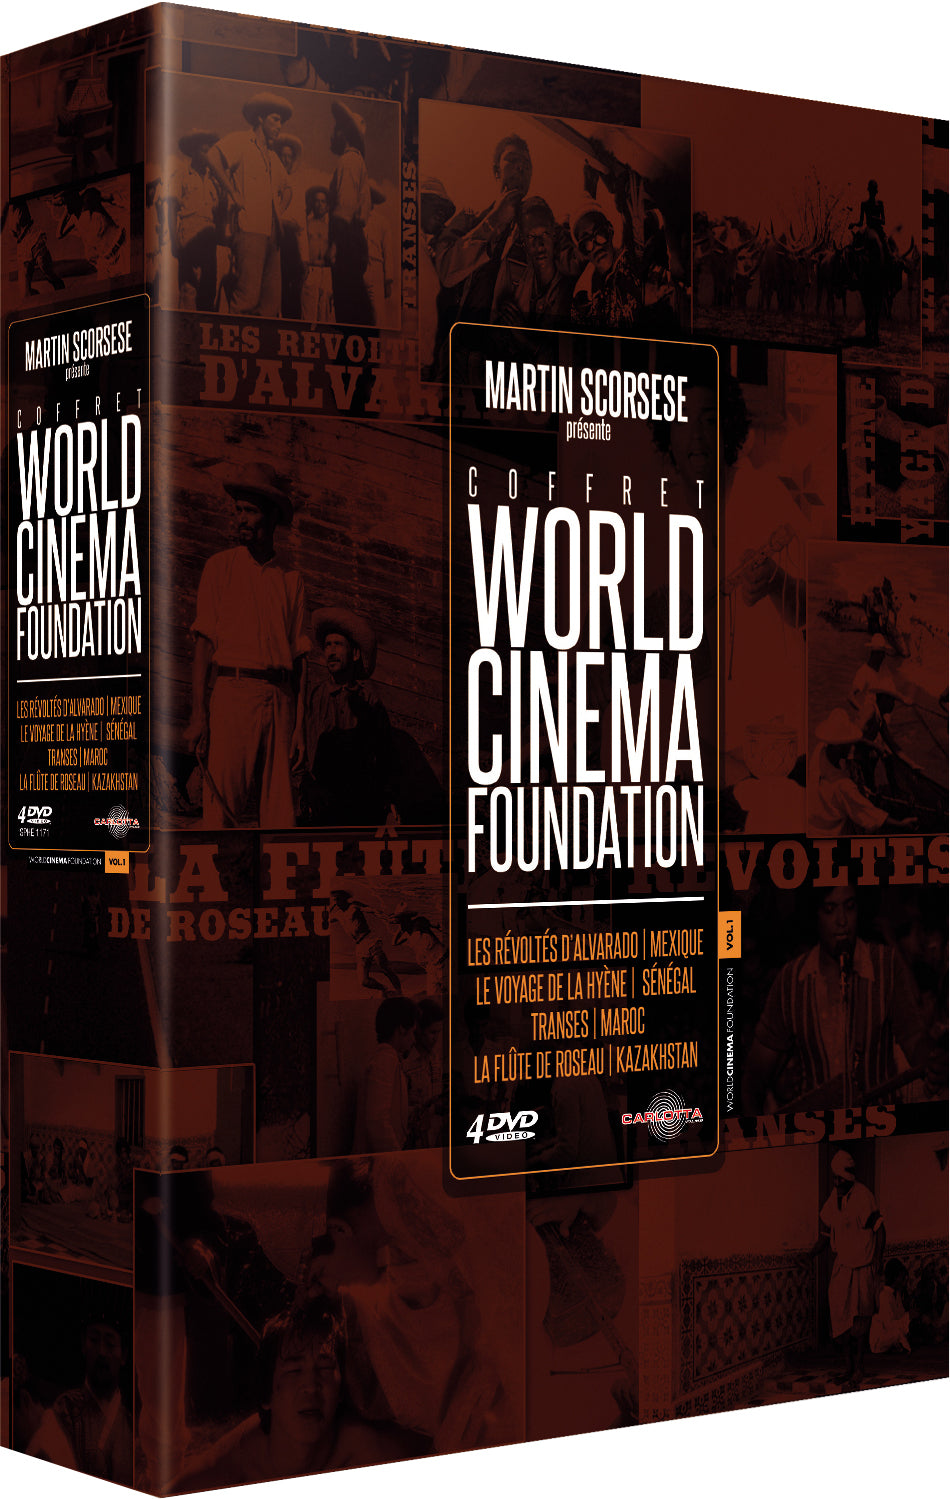 Coffret World Cinema Foundation - DVD - CARLOTTA FILMS - La Boutique